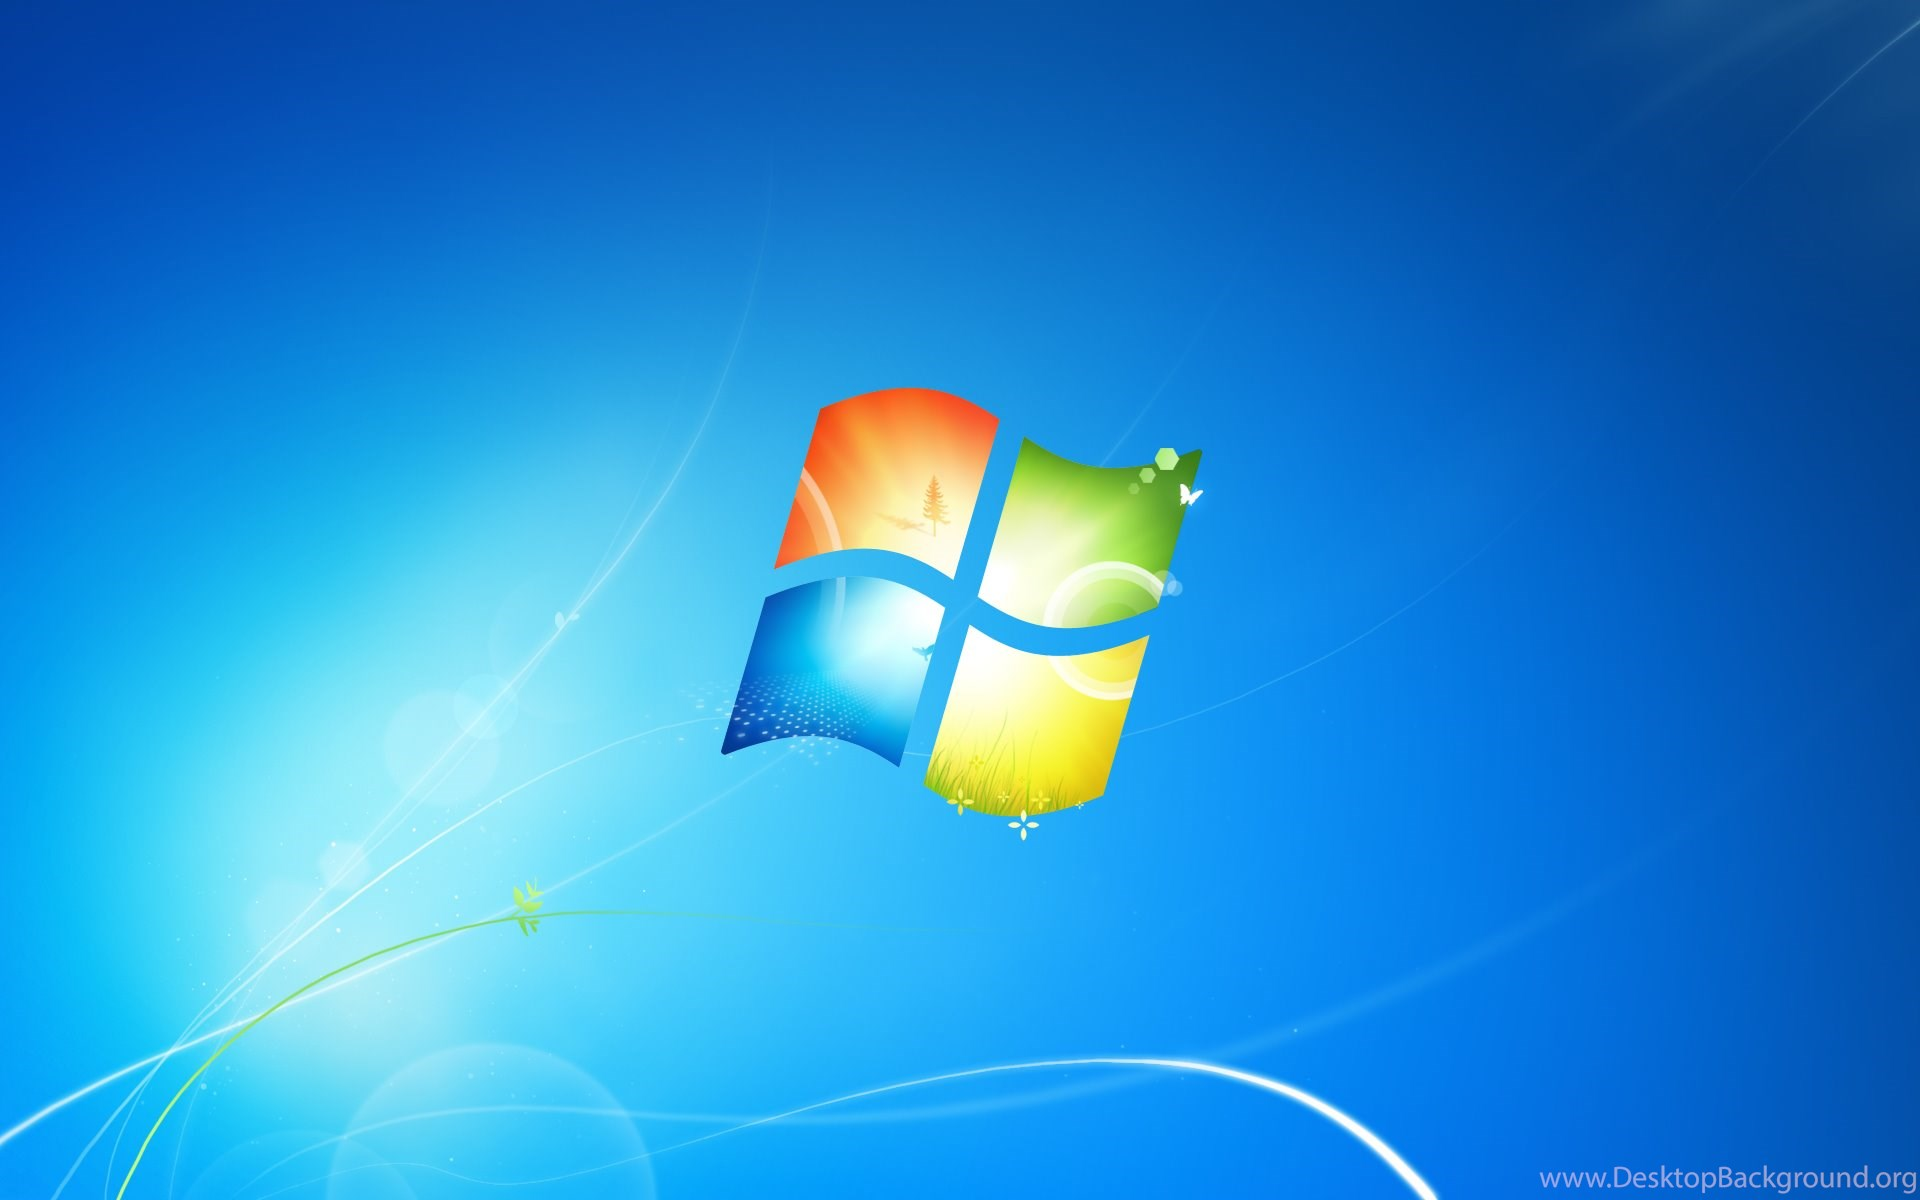 Windows xp recovery file location